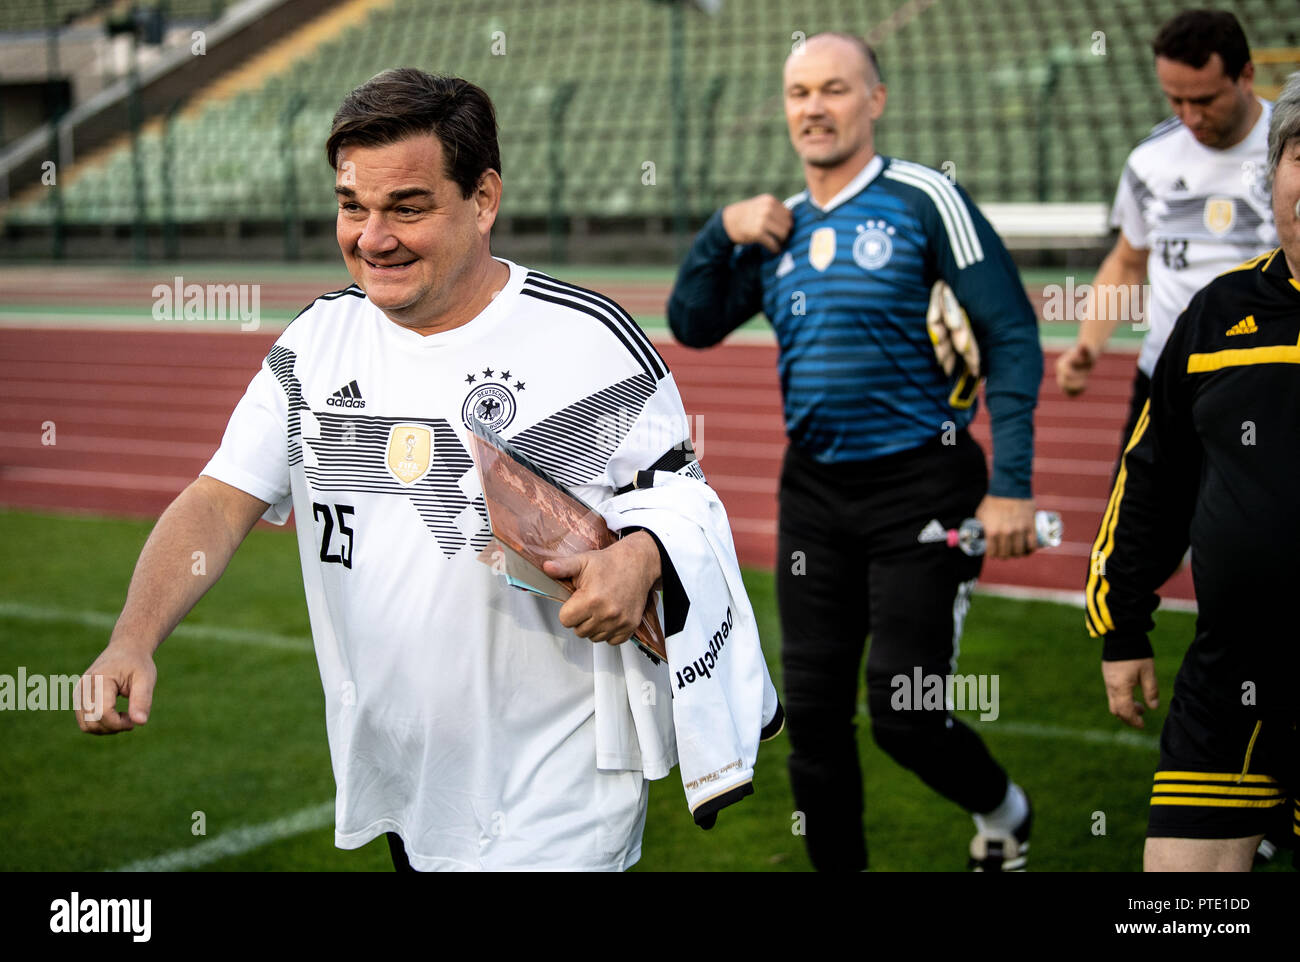 09 October 2018, Berlin: Markus Weinberg (CDU, l), captain of the FC Bundestag and member of the German Bundestag, comes onto the pitch. The FC Bundestag uses the match against the team selection of Turkish journalists in exile to draw attention to the situation of more than 260 journalists worldwide who are currently in prison.    (to dpa 'Spiel für die Pressefreiheit: 8:2 für den FC Bundestag' from 09.10.2018) Photo: Fabian Sommer/dpa - Stock Image